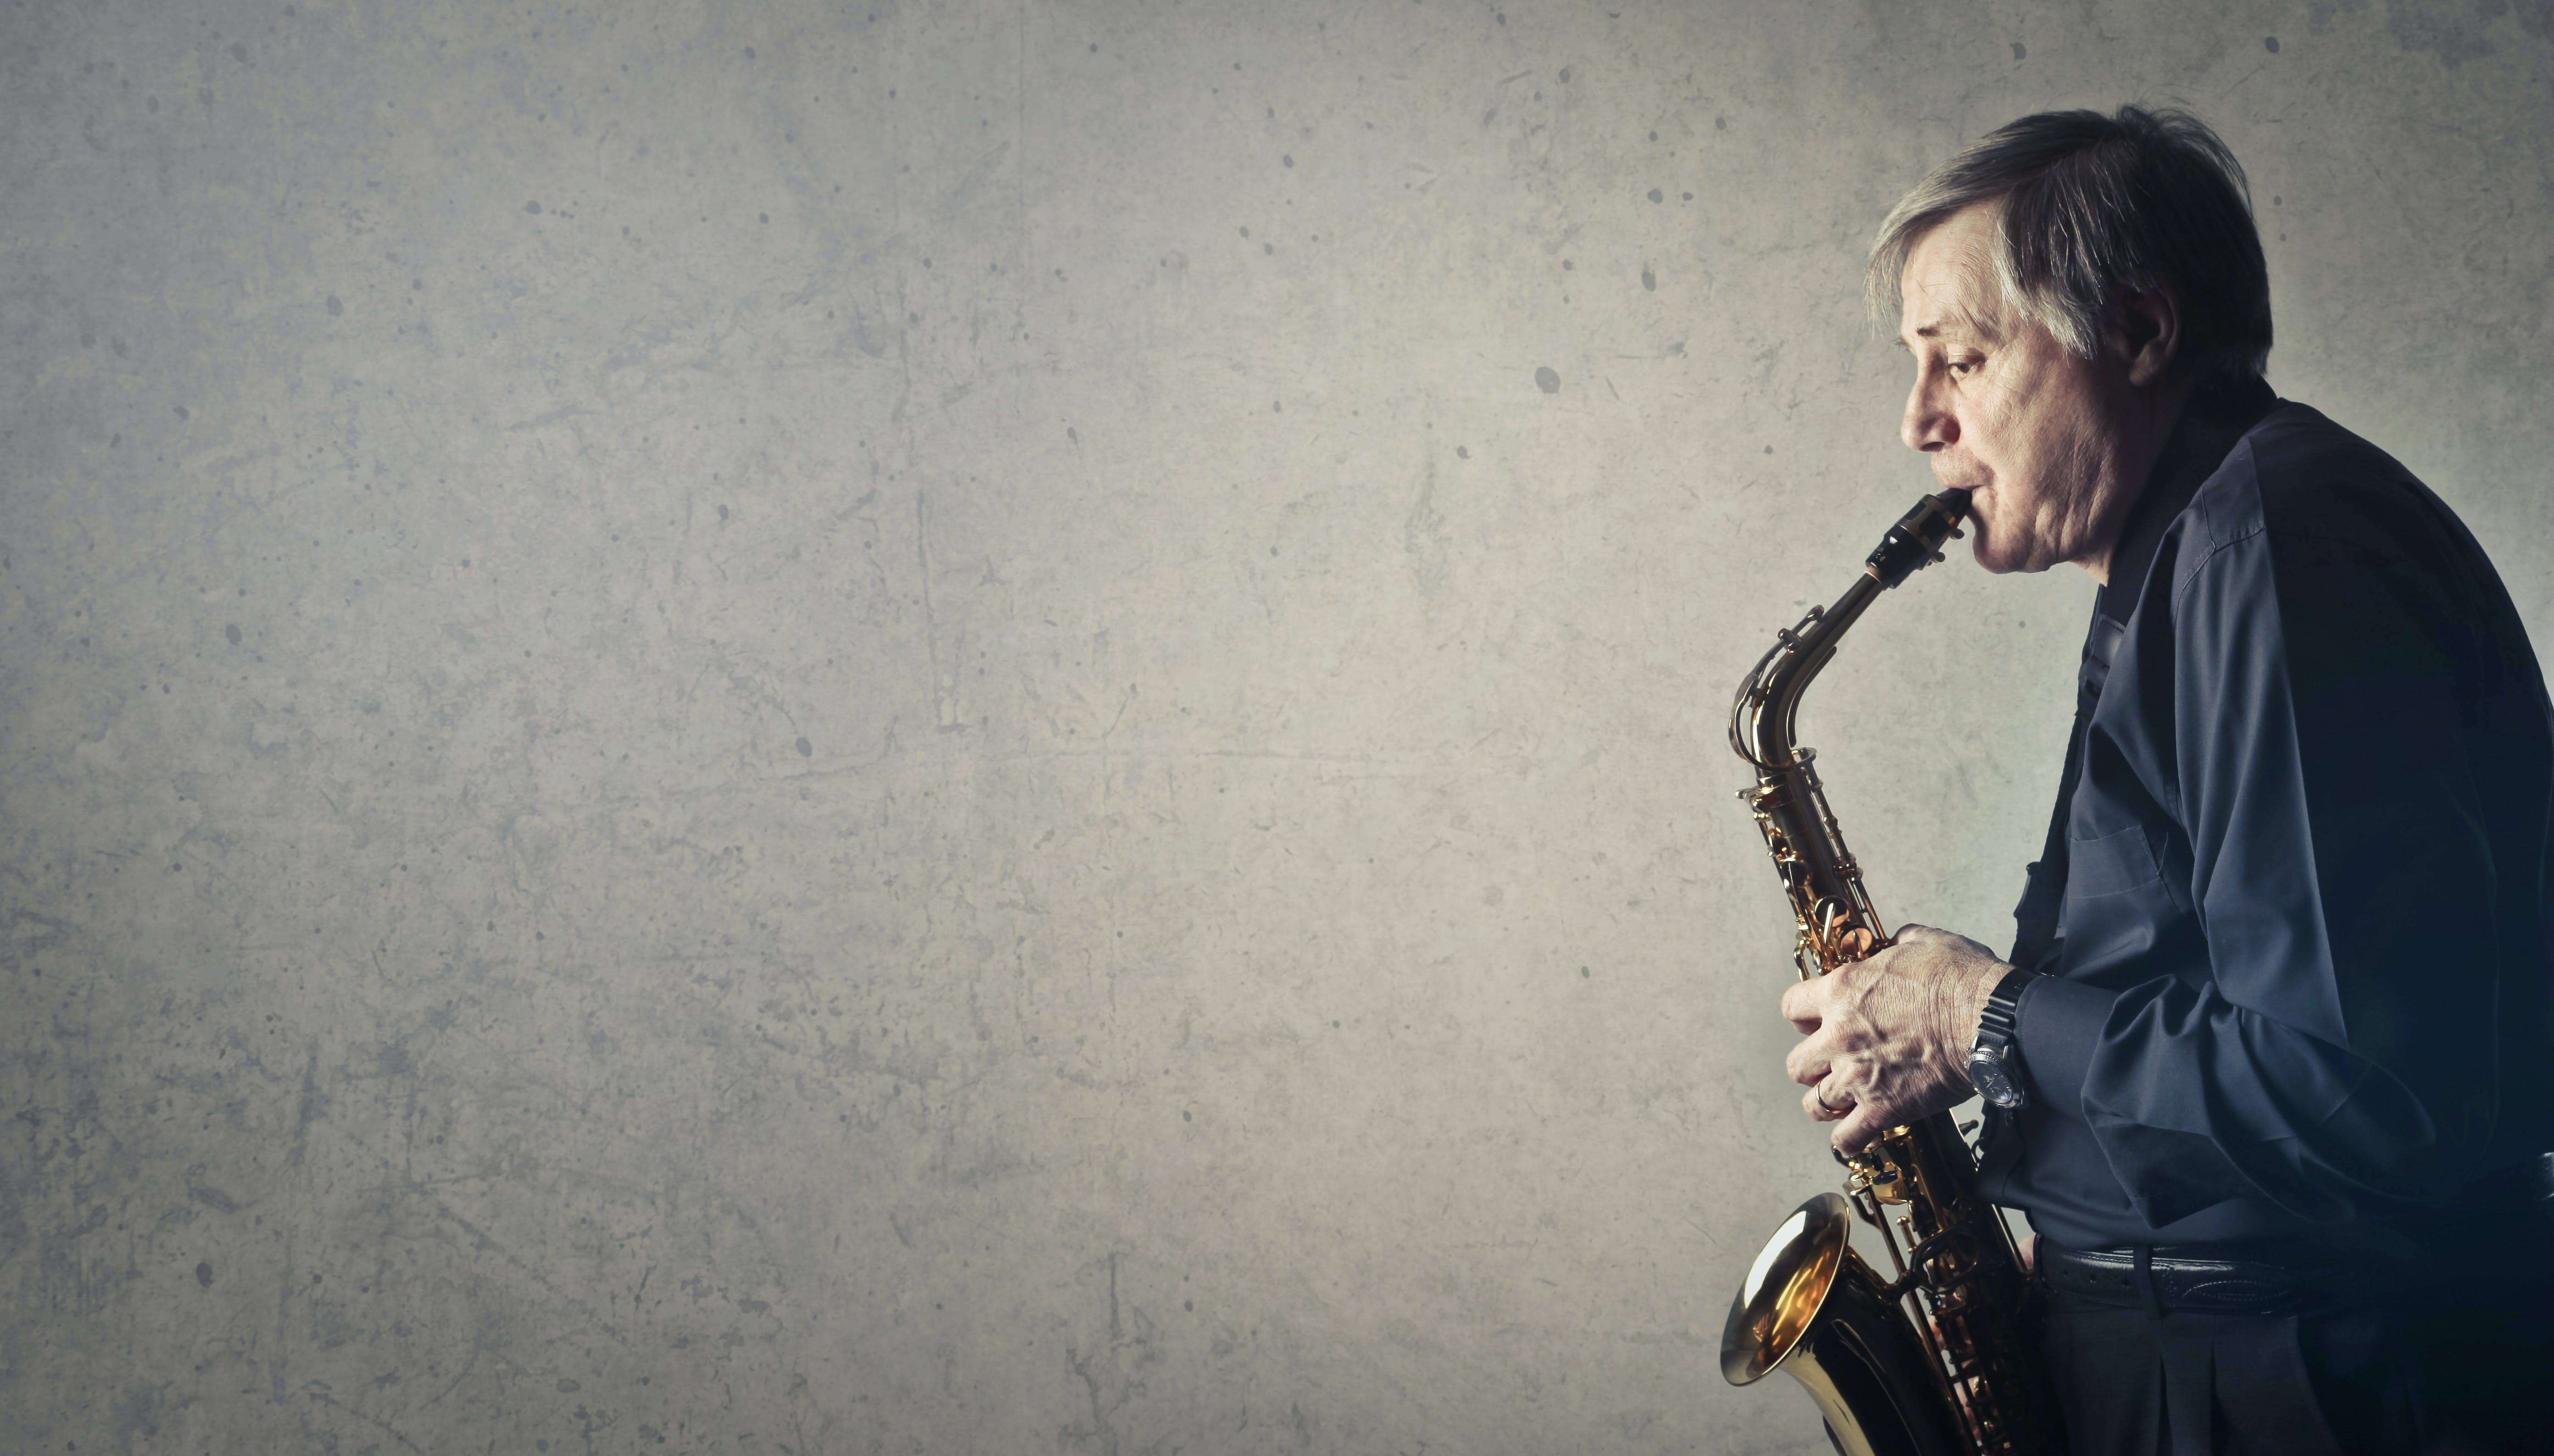 Man Playing Saxophone